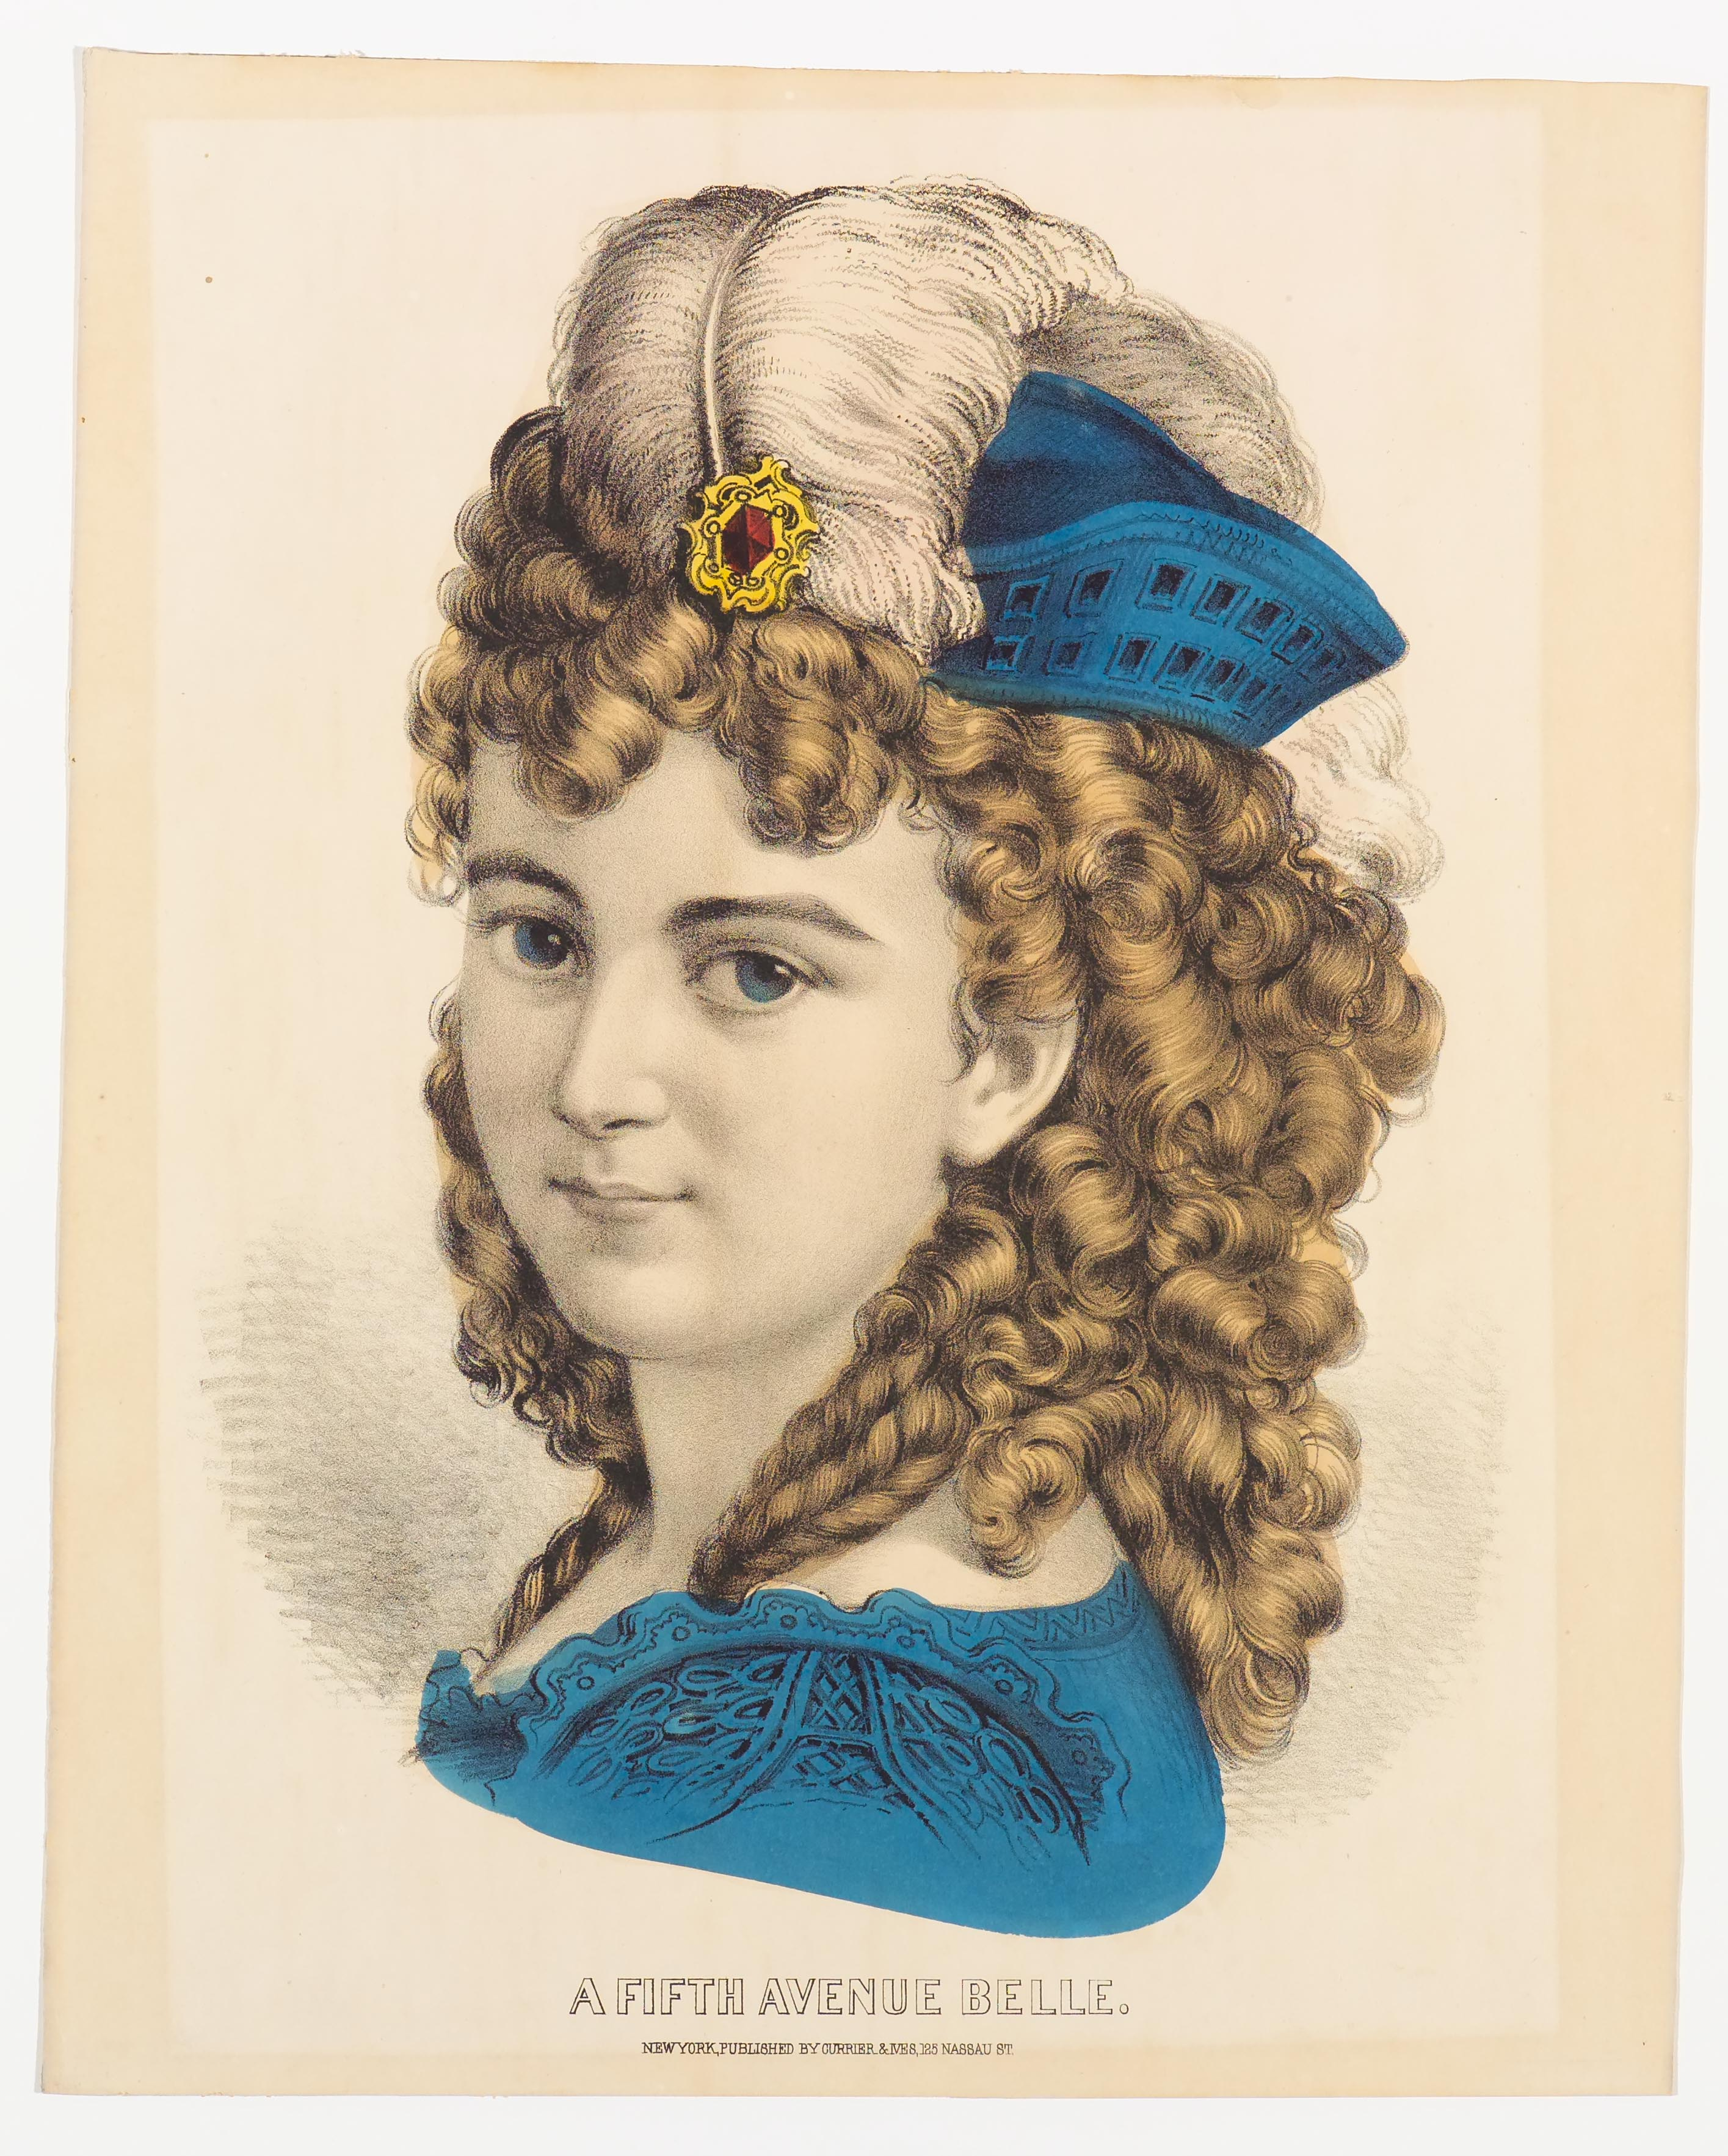 Shoulder view of woman in blue hat with white plume and blue dress